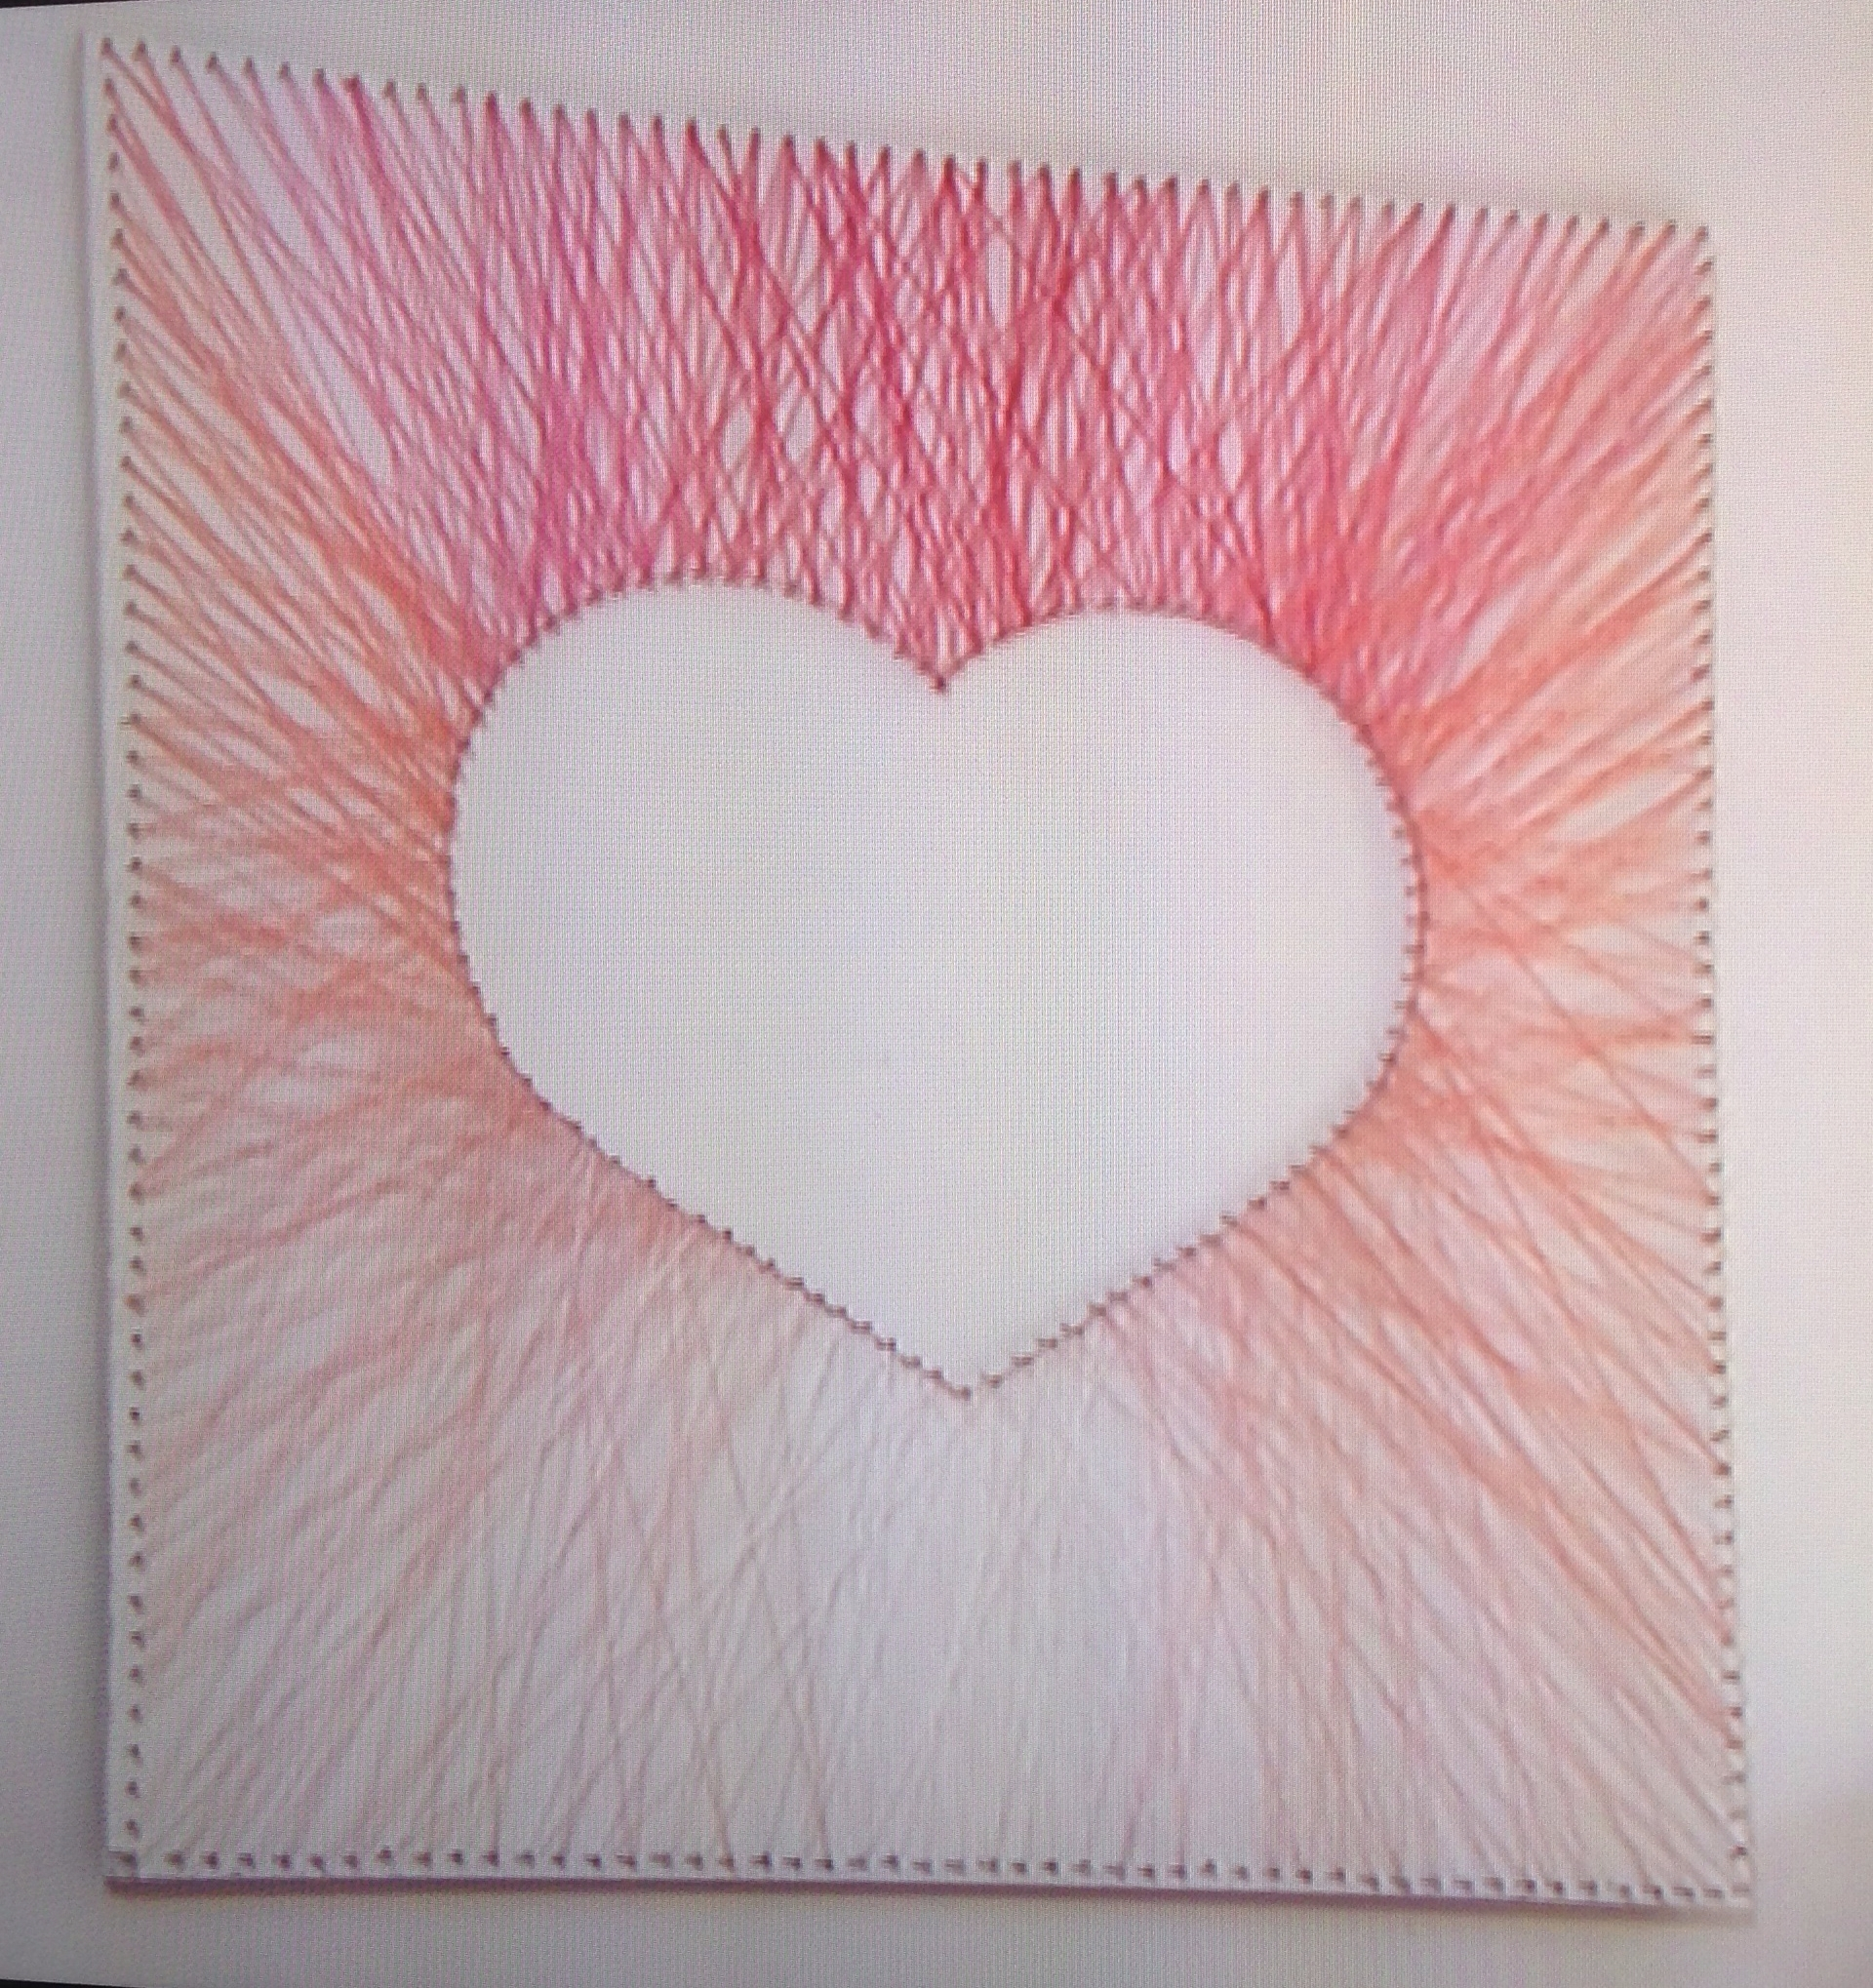 Nail And Yarn Wall Art Within Most Recent Pink Heart Wall Art Made From Nails And Wool! Kirstie's Fill Your (View 11 of 15)